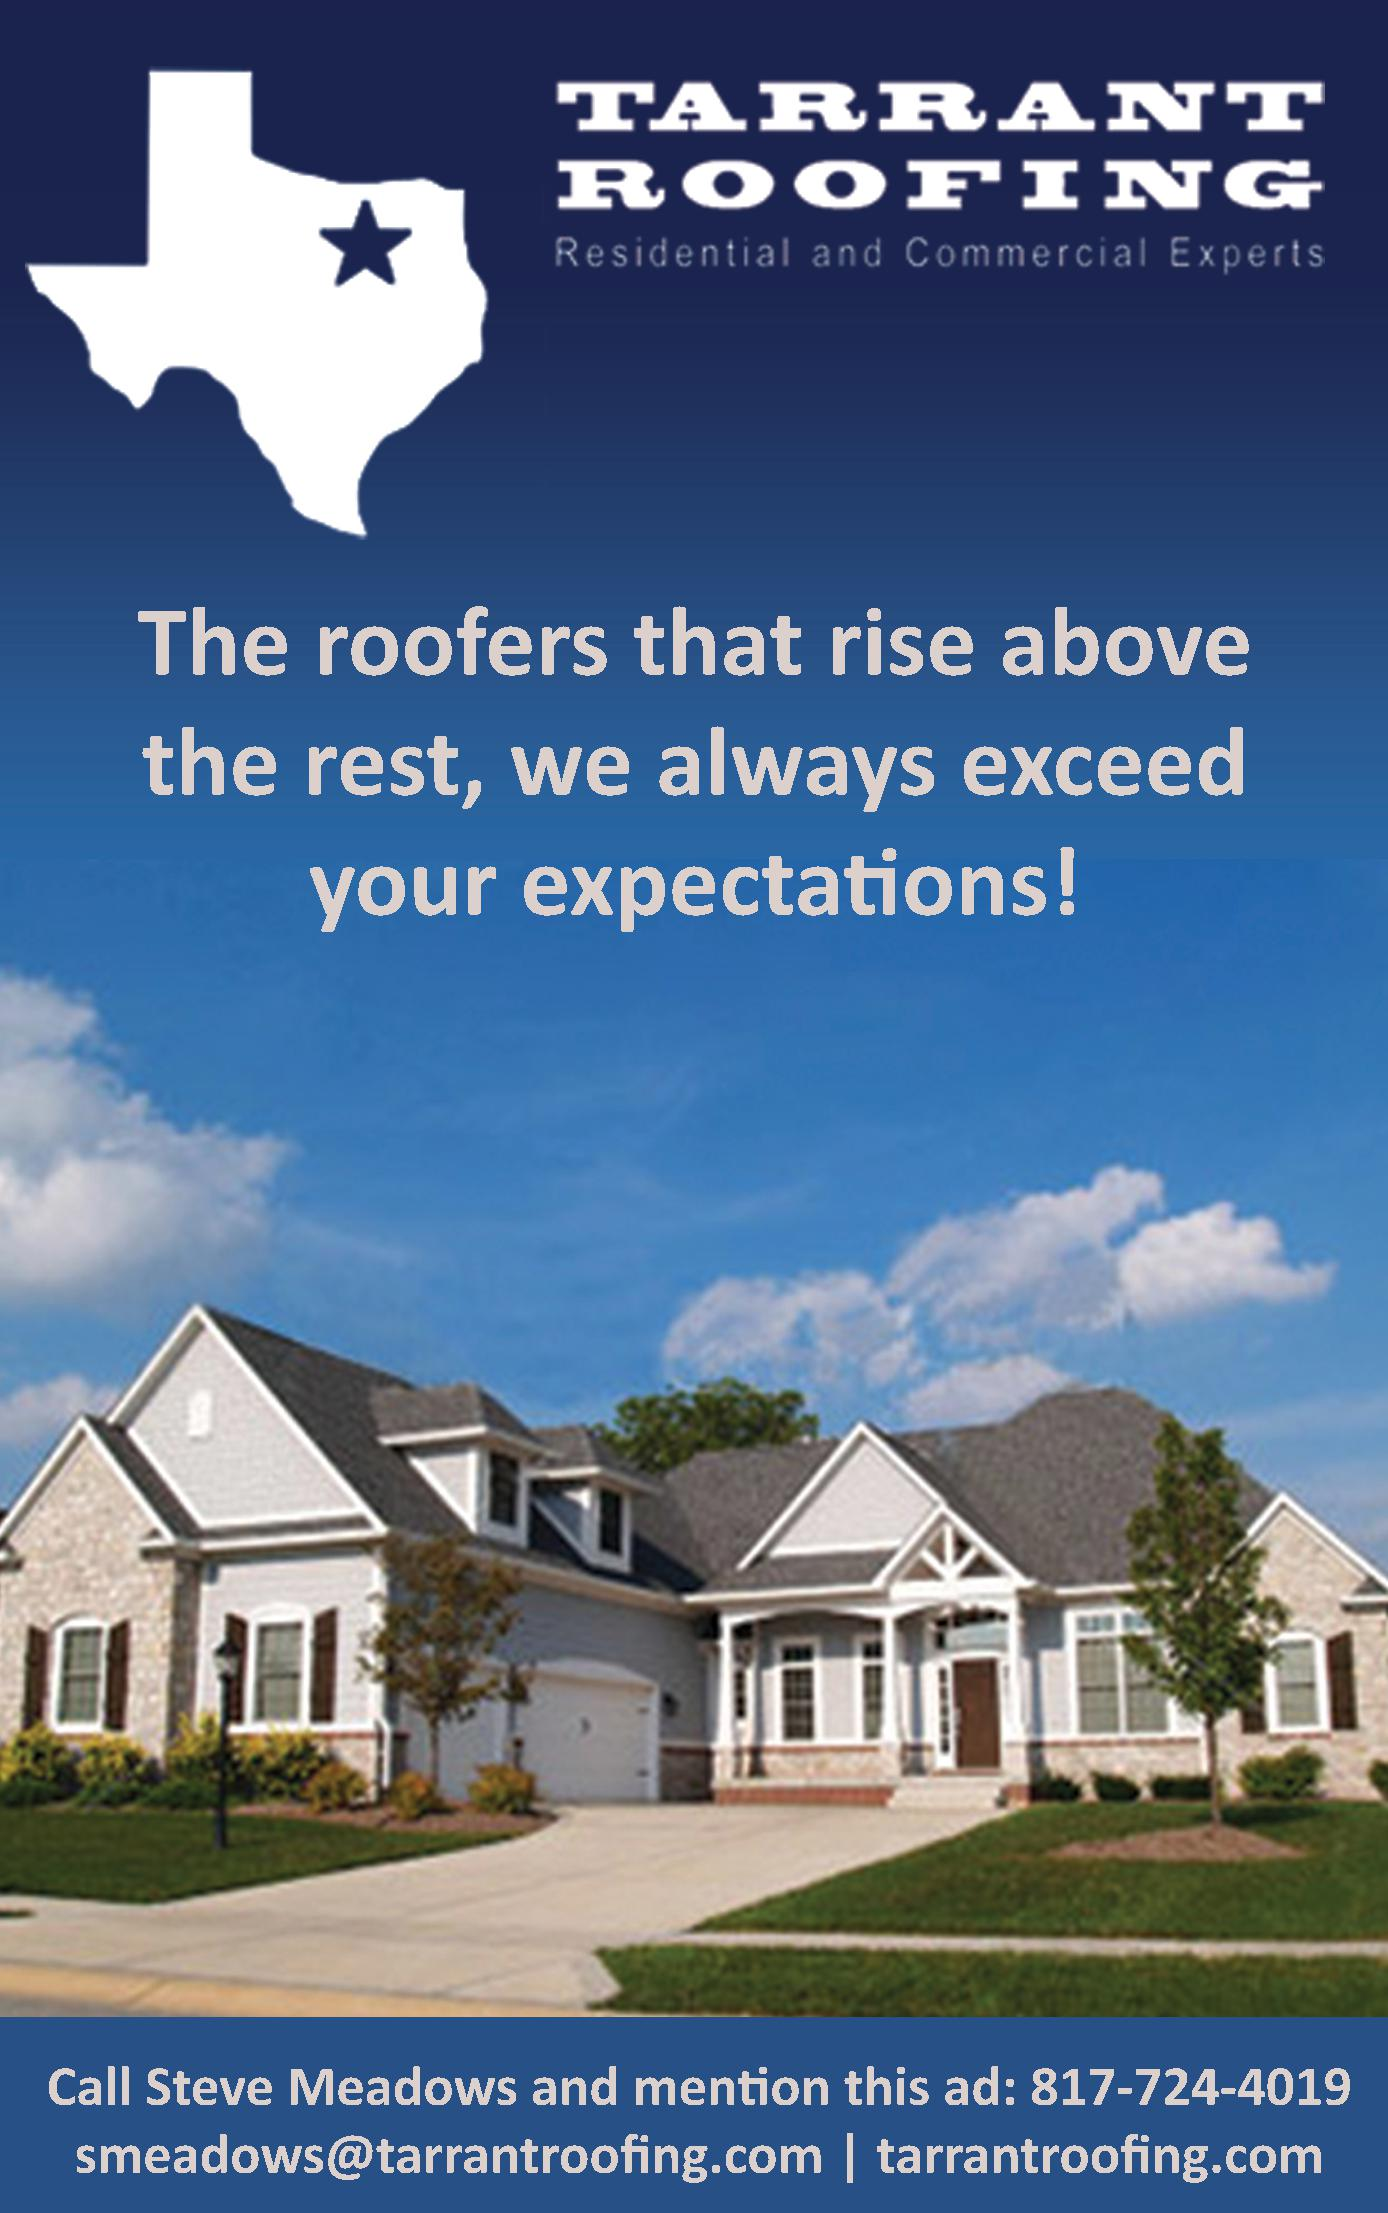 Tarrant Roofing - Meadows